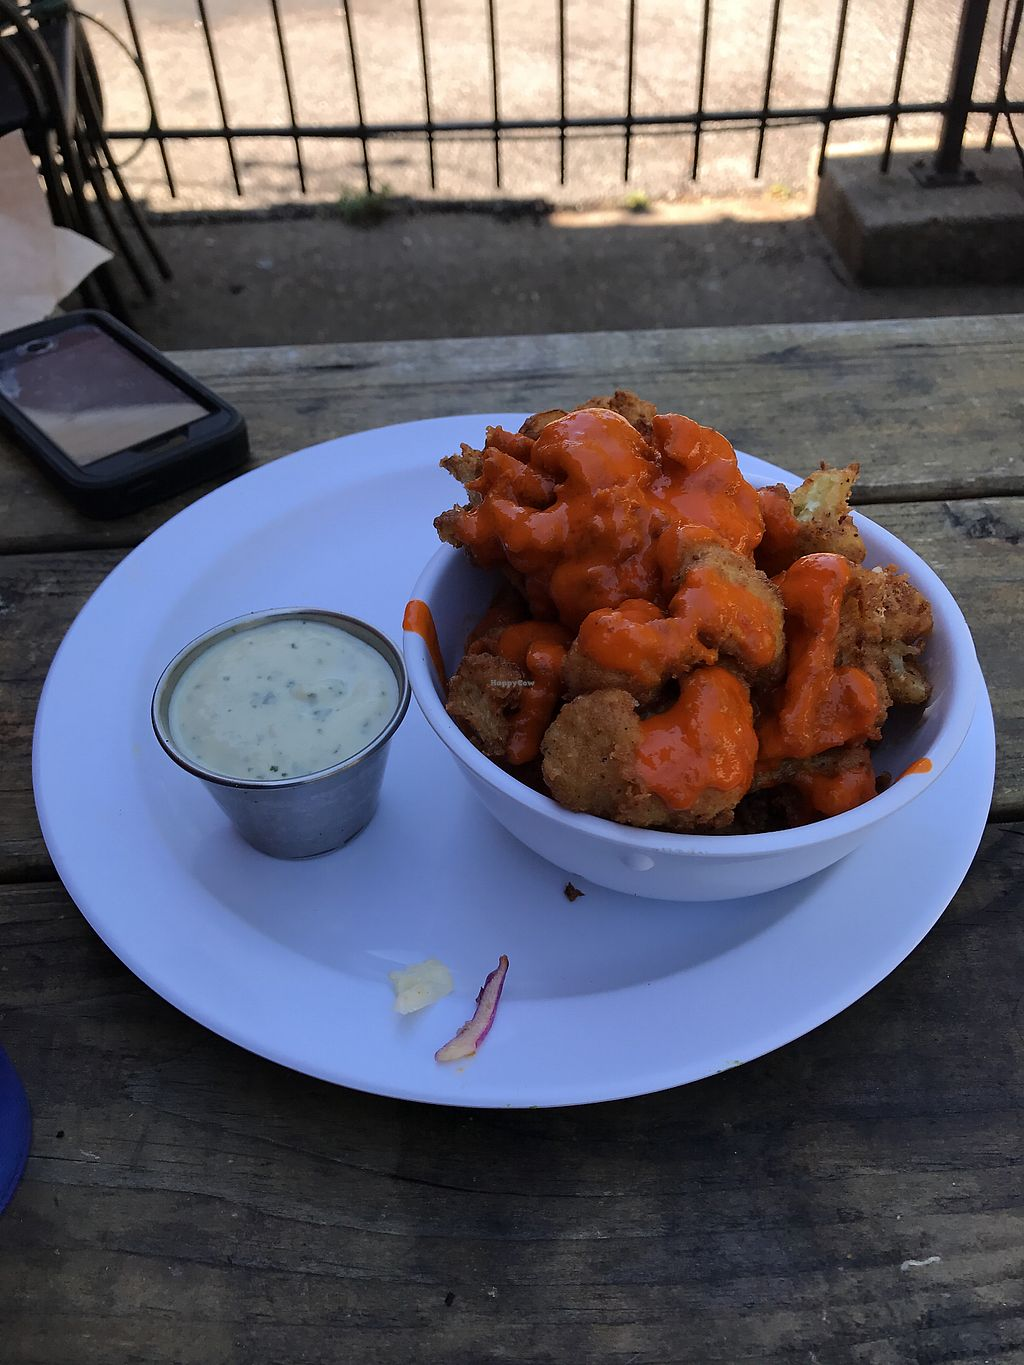 """Photo of Lulu's Local Eatery  by <a href=""""/members/profile/Wolf-LoverMarie"""">Wolf-LoverMarie</a> <br/>Buffalo cauliflower bites <br/> September 2, 2017  - <a href='/contact/abuse/image/40268/300230'>Report</a>"""